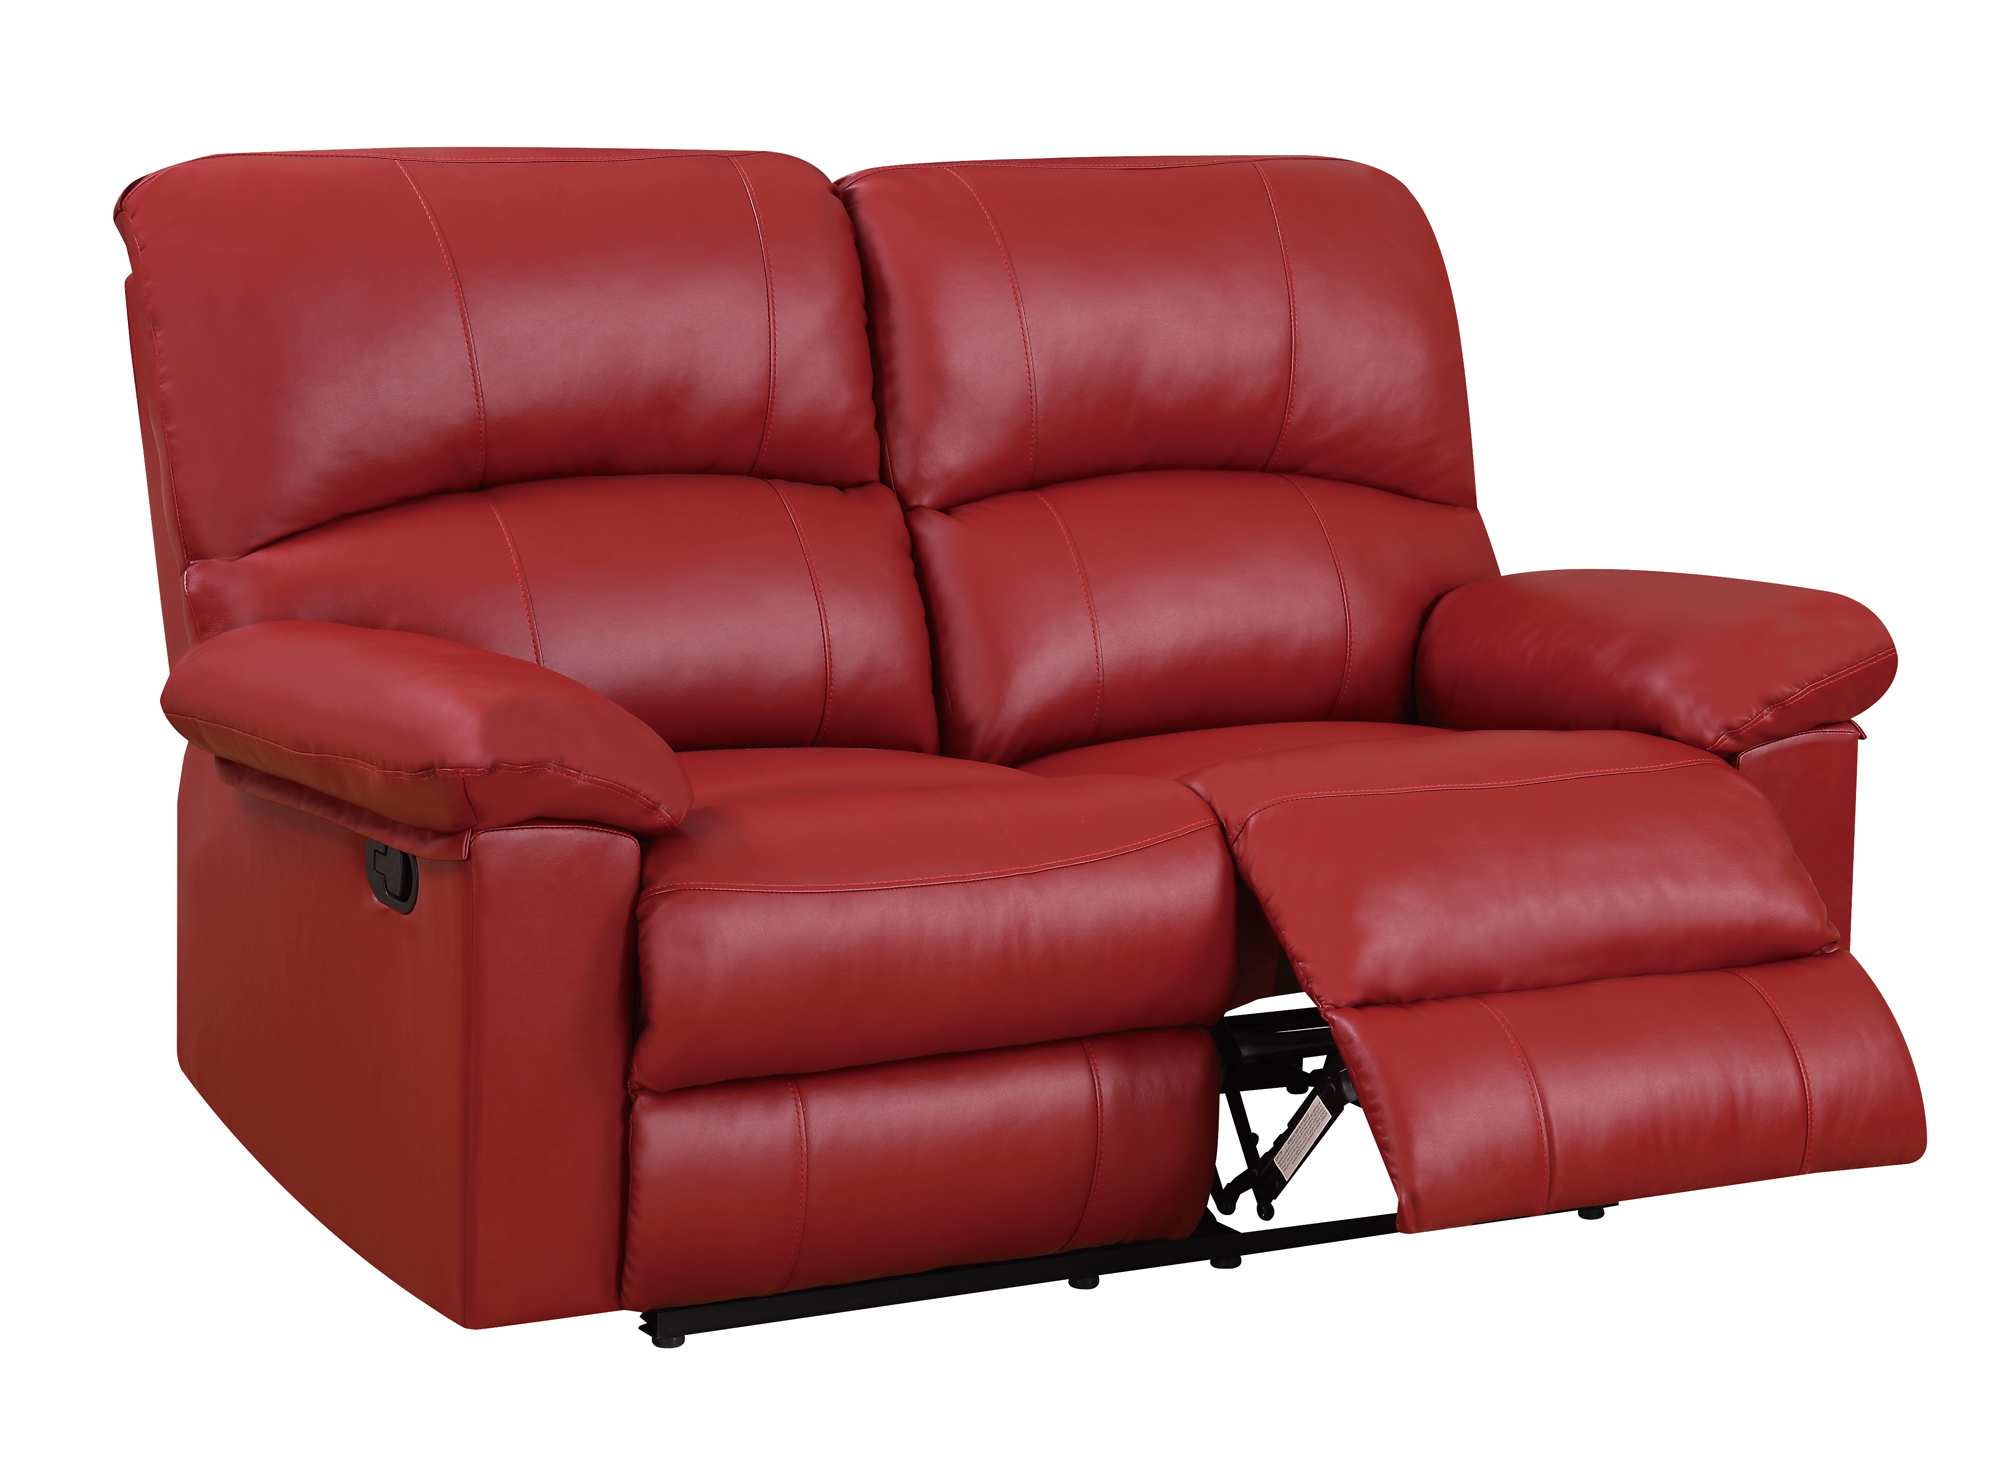 u99270 red pu reclining loveseat by global furniture